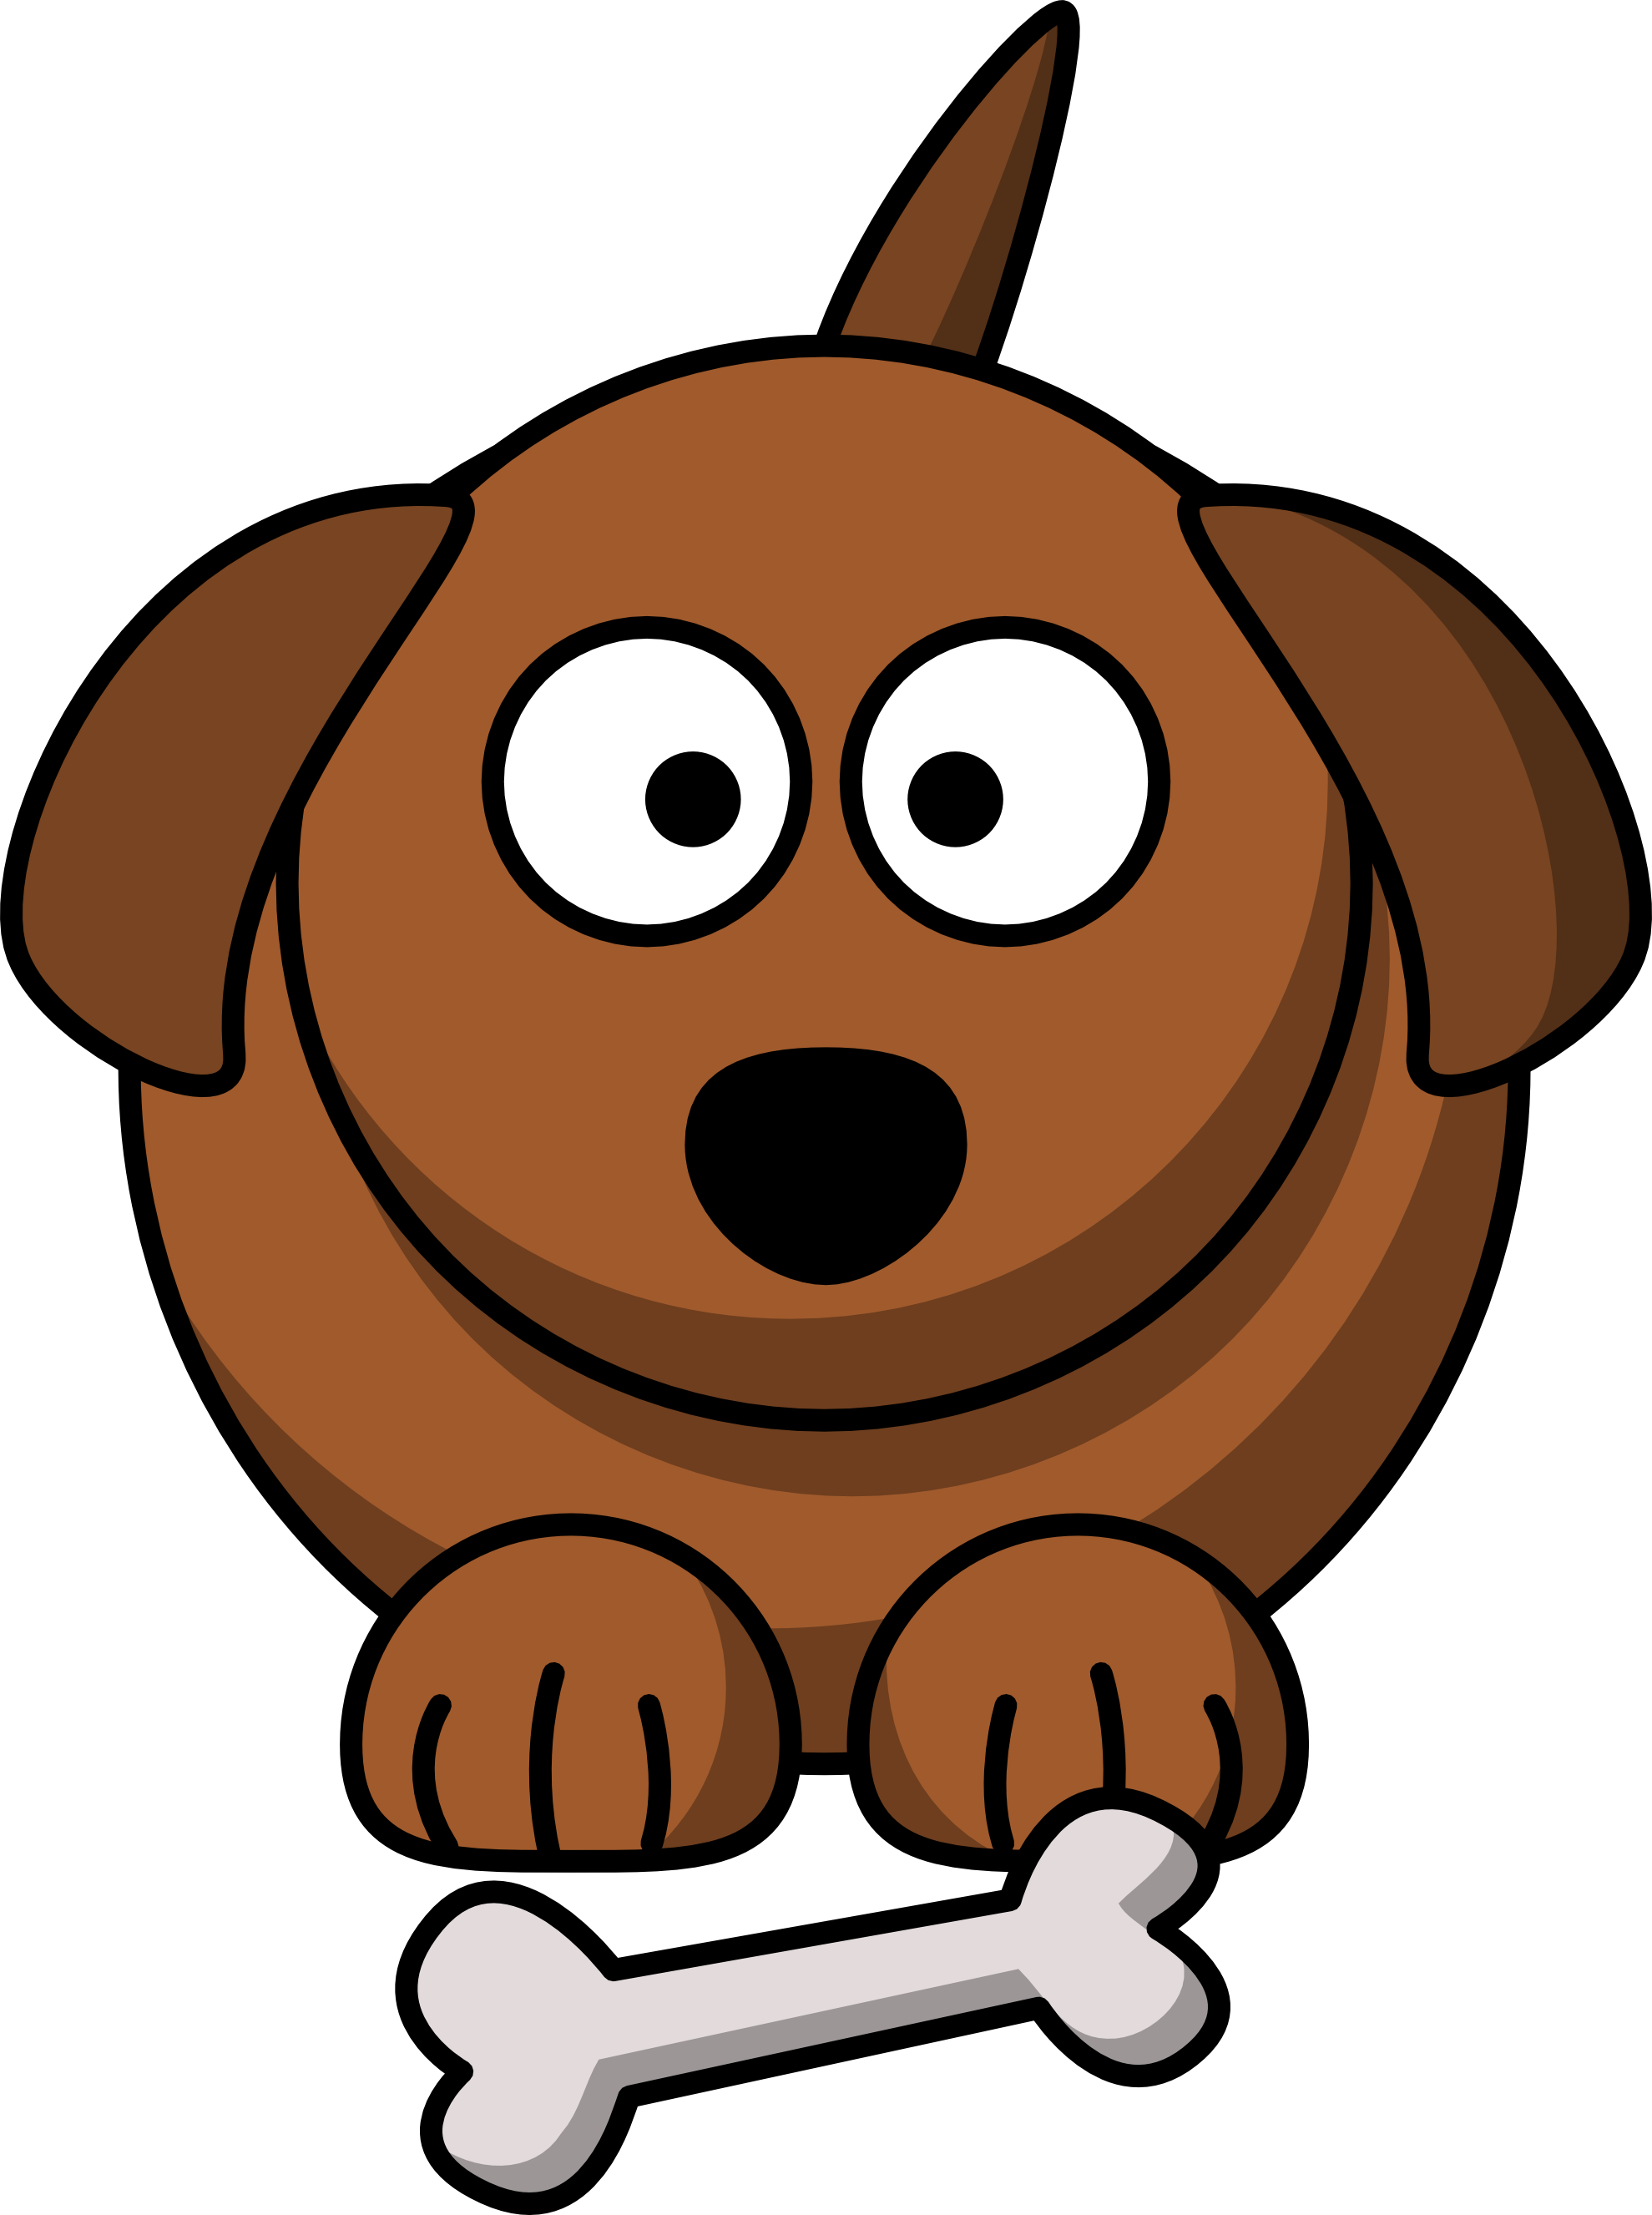 Stuffed Animal clipart #2, Download drawings